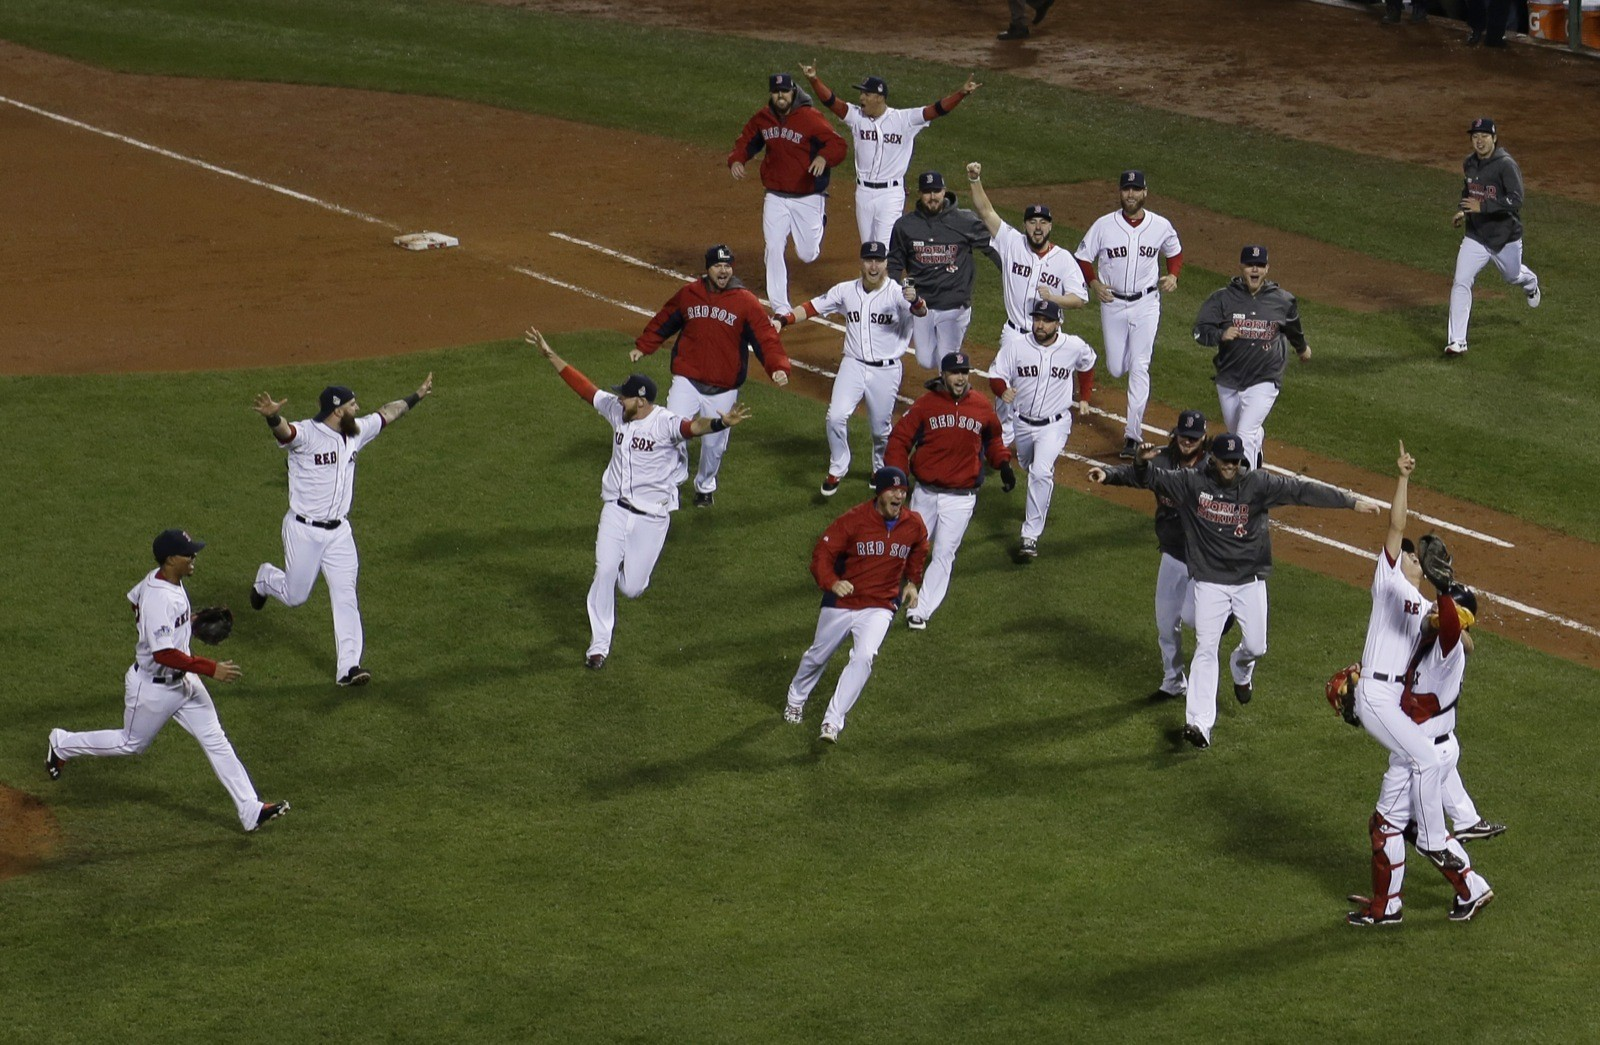 Game 6 in Pictures